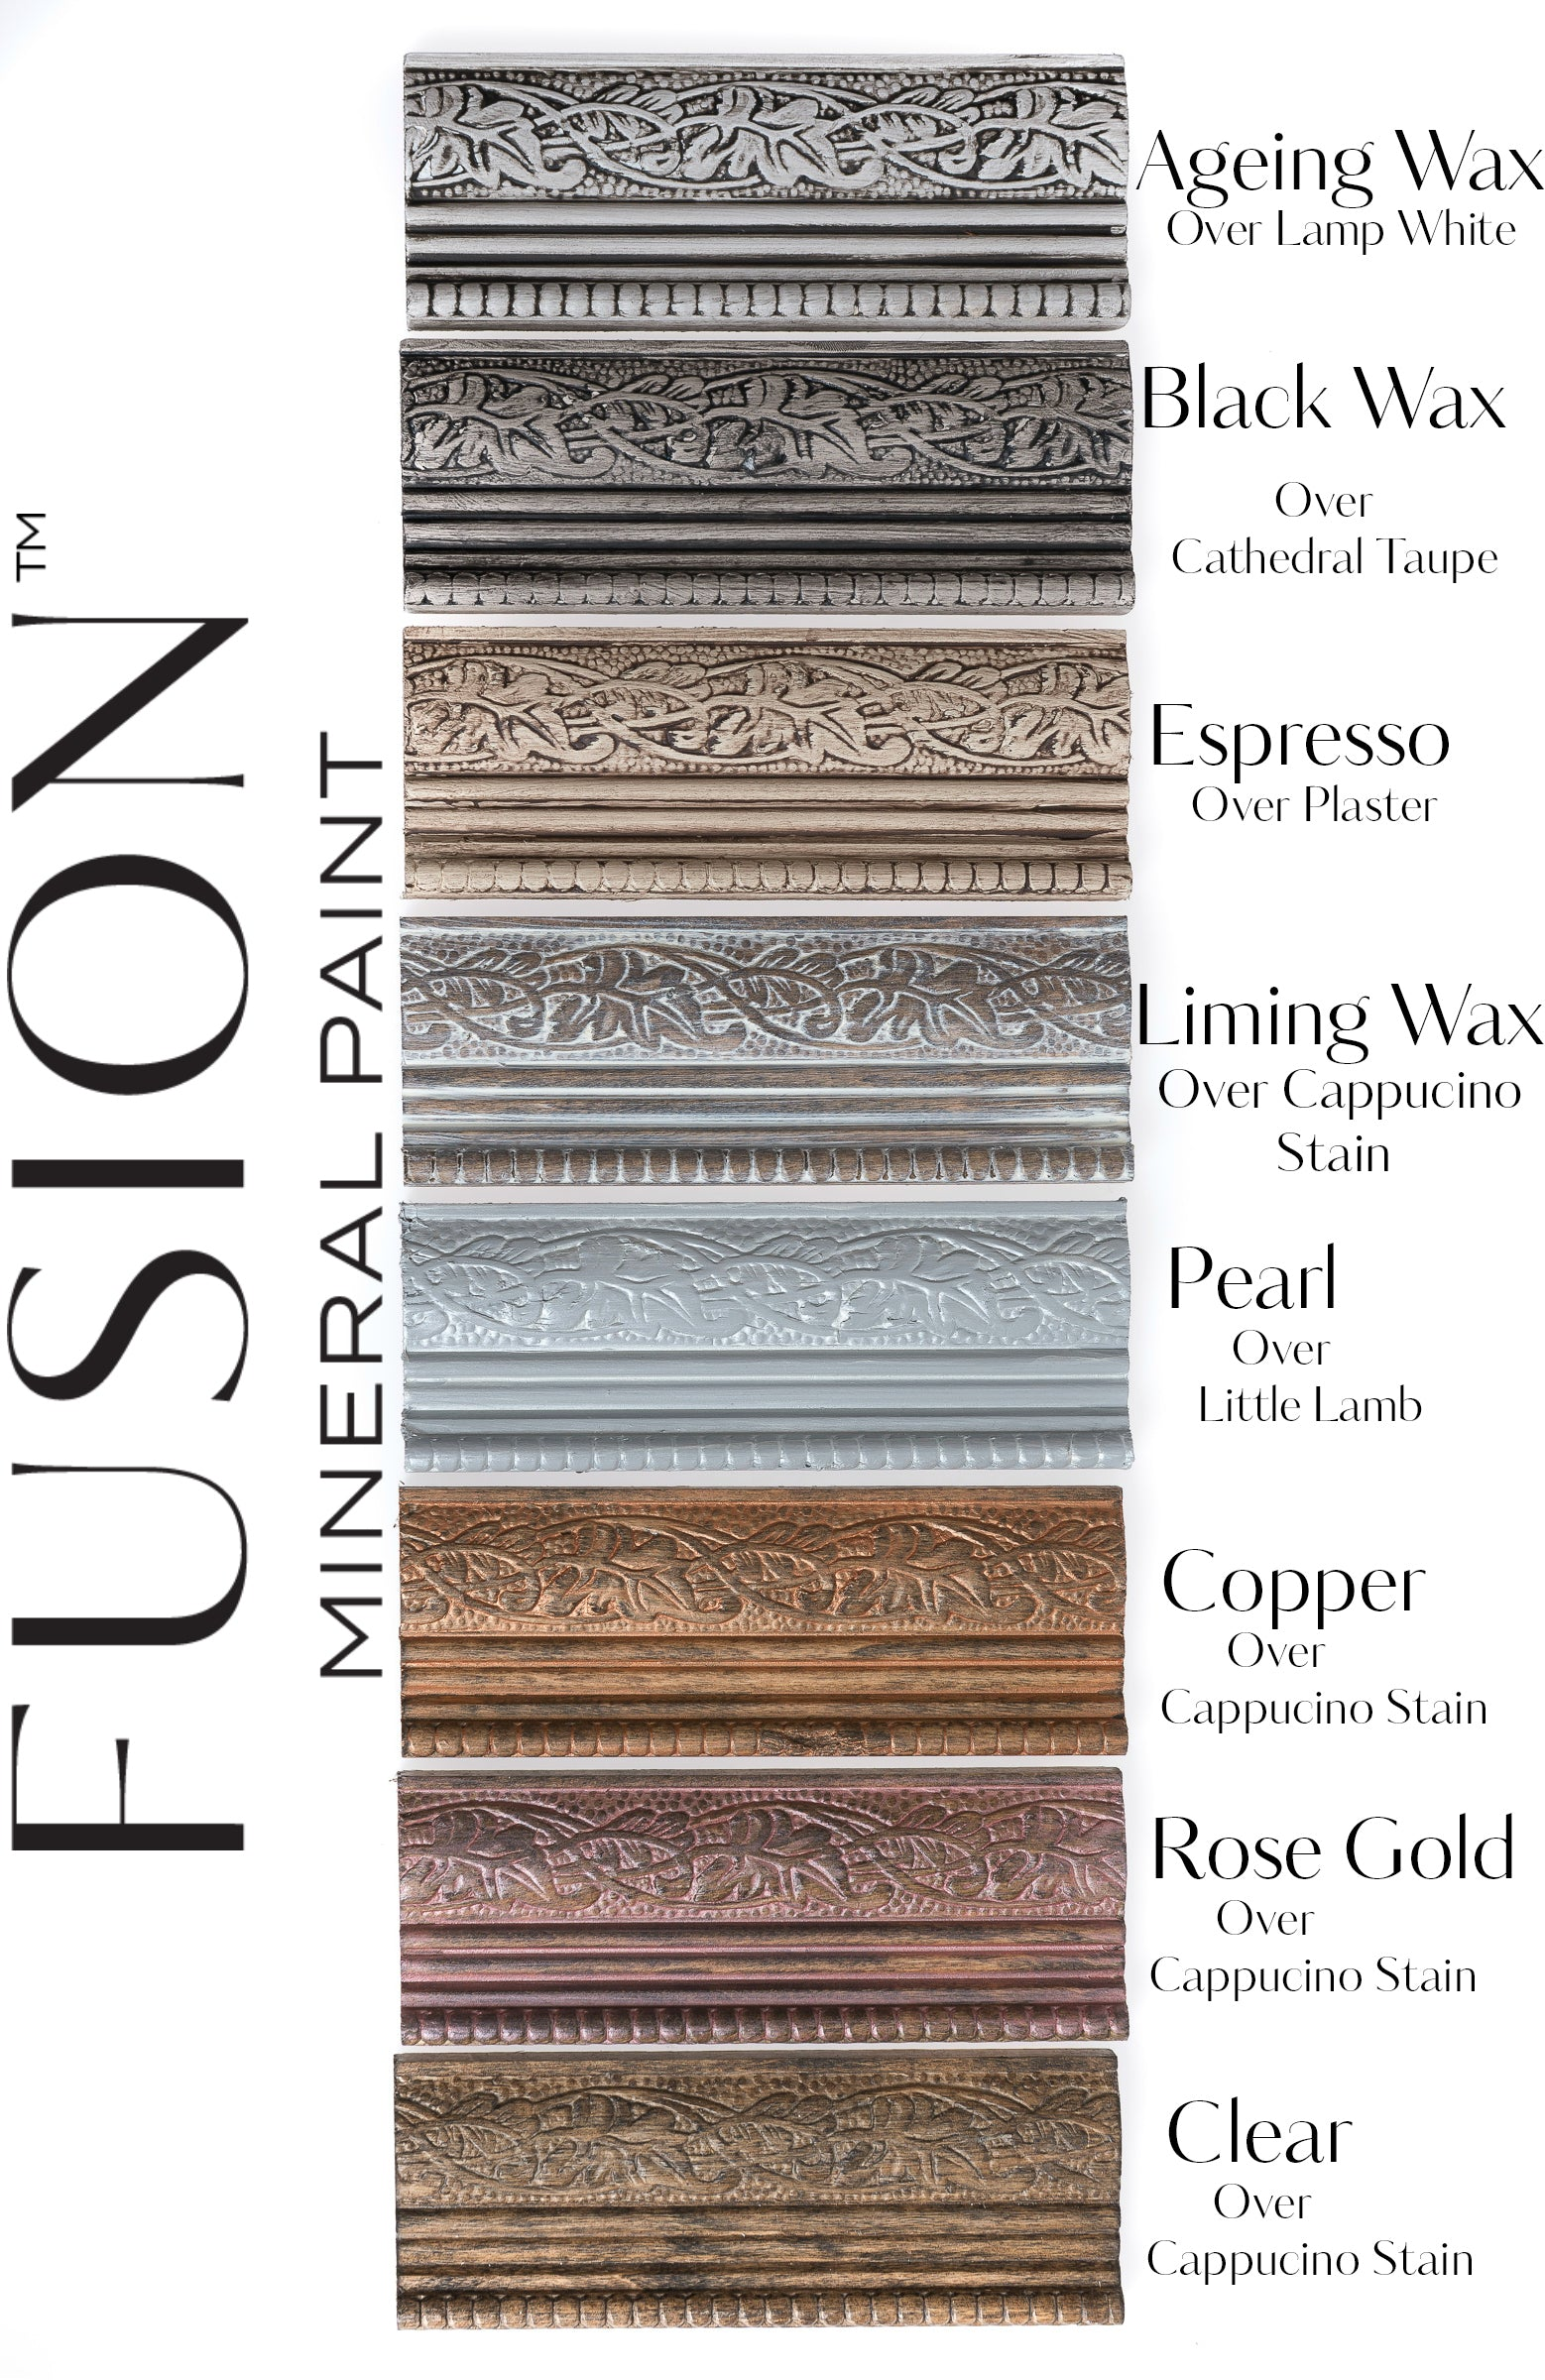 Copper Metallic Wax - Fusion Mineral Paint - Where to Buy Online - Dear Olympia - Flate Rate US Shipping